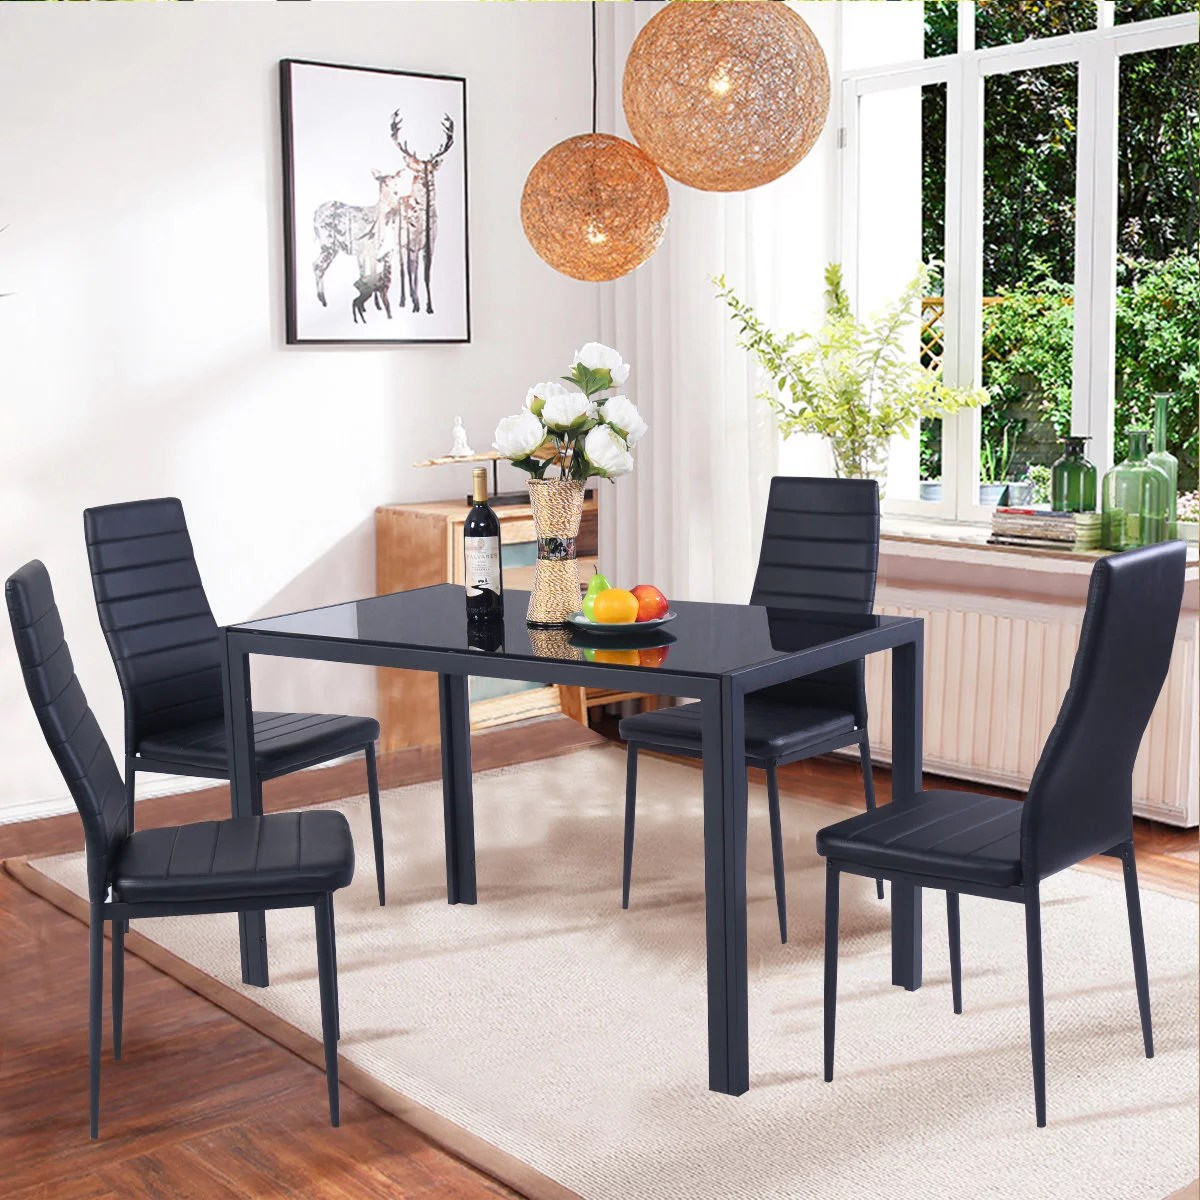 Table With Chairs Costway 5 Piece Kitchen Dining Set Glass Metal Table And 4 Chairs Breakfast Furniture